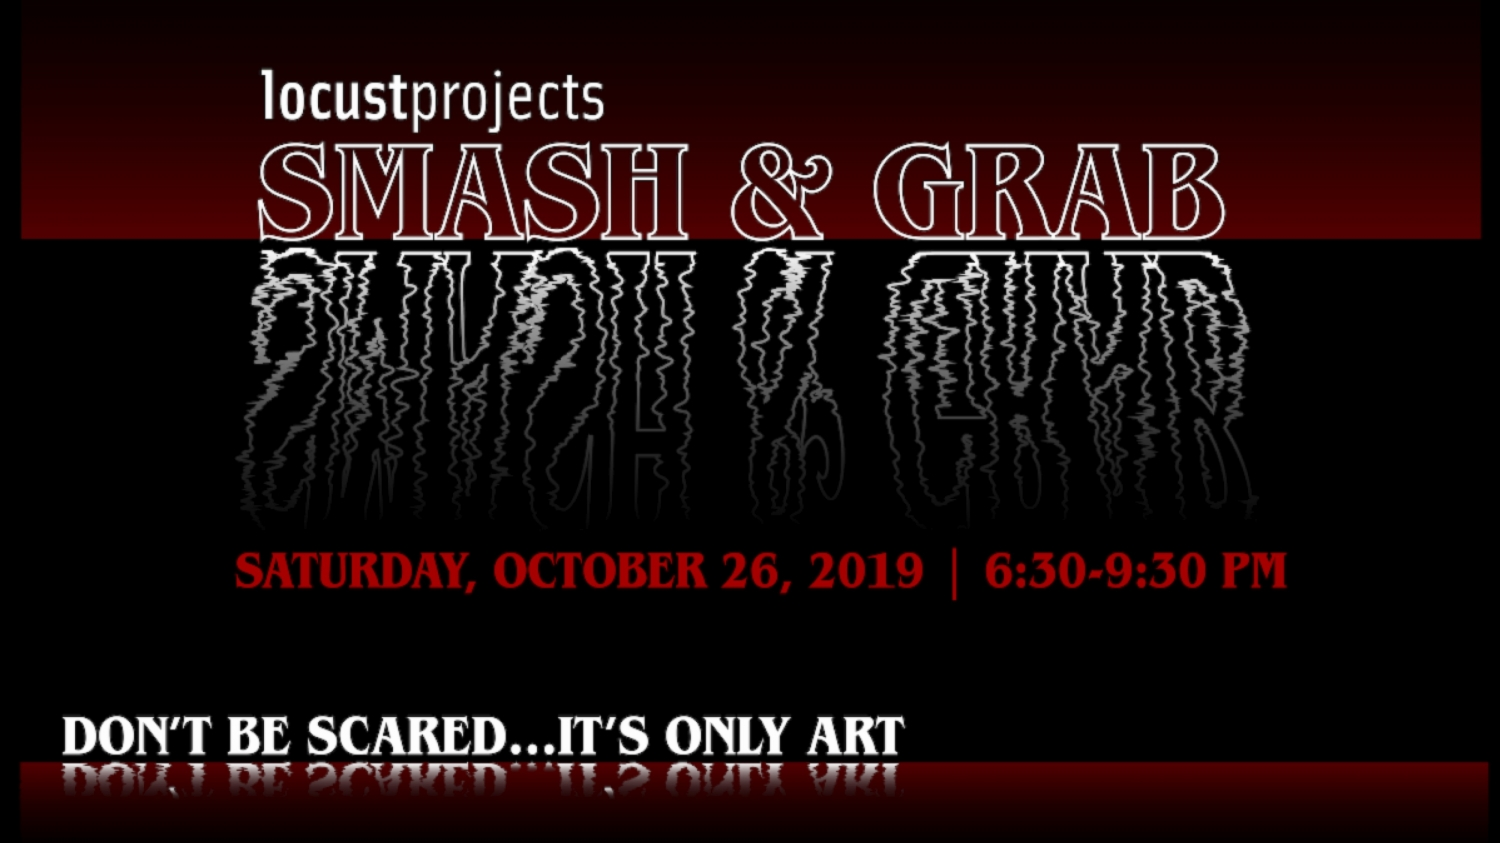 2019 Annual Smash & Grab Fundraiser